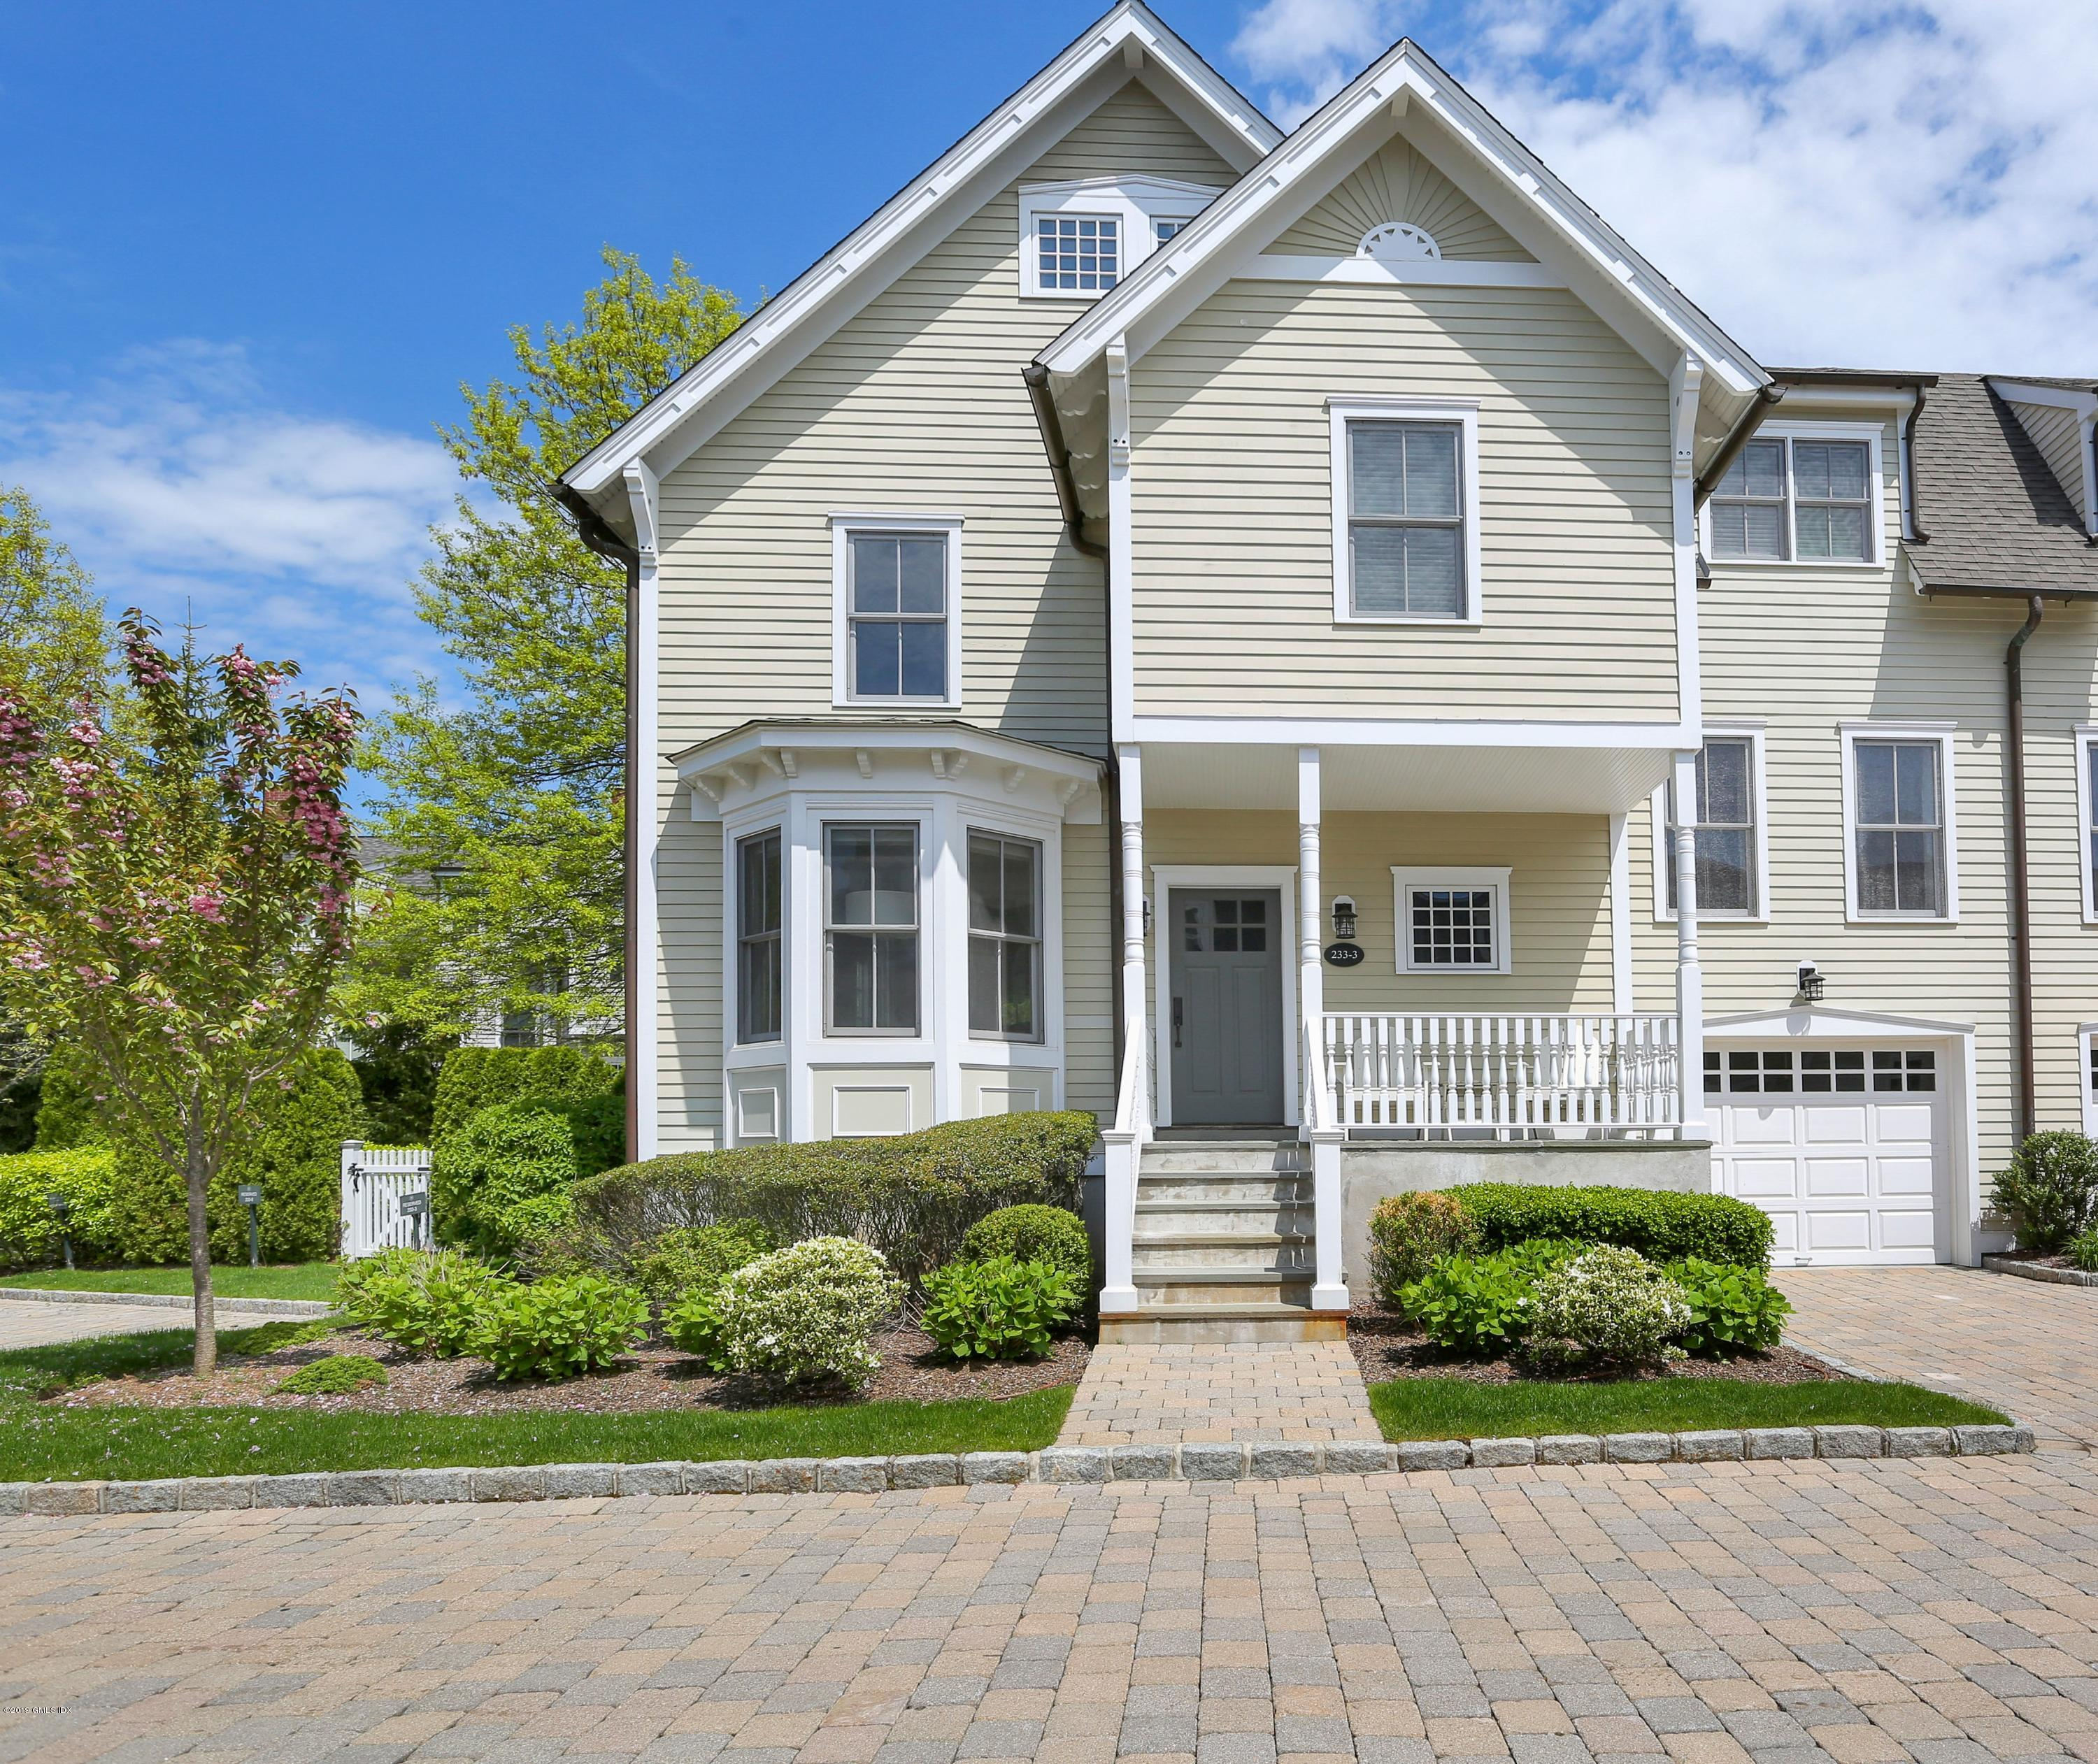 233 Milbank Avenue,Greenwich,Connecticut 06830,3 Bedrooms Bedrooms,4 BathroomsBathrooms,Condominium,Milbank,105938